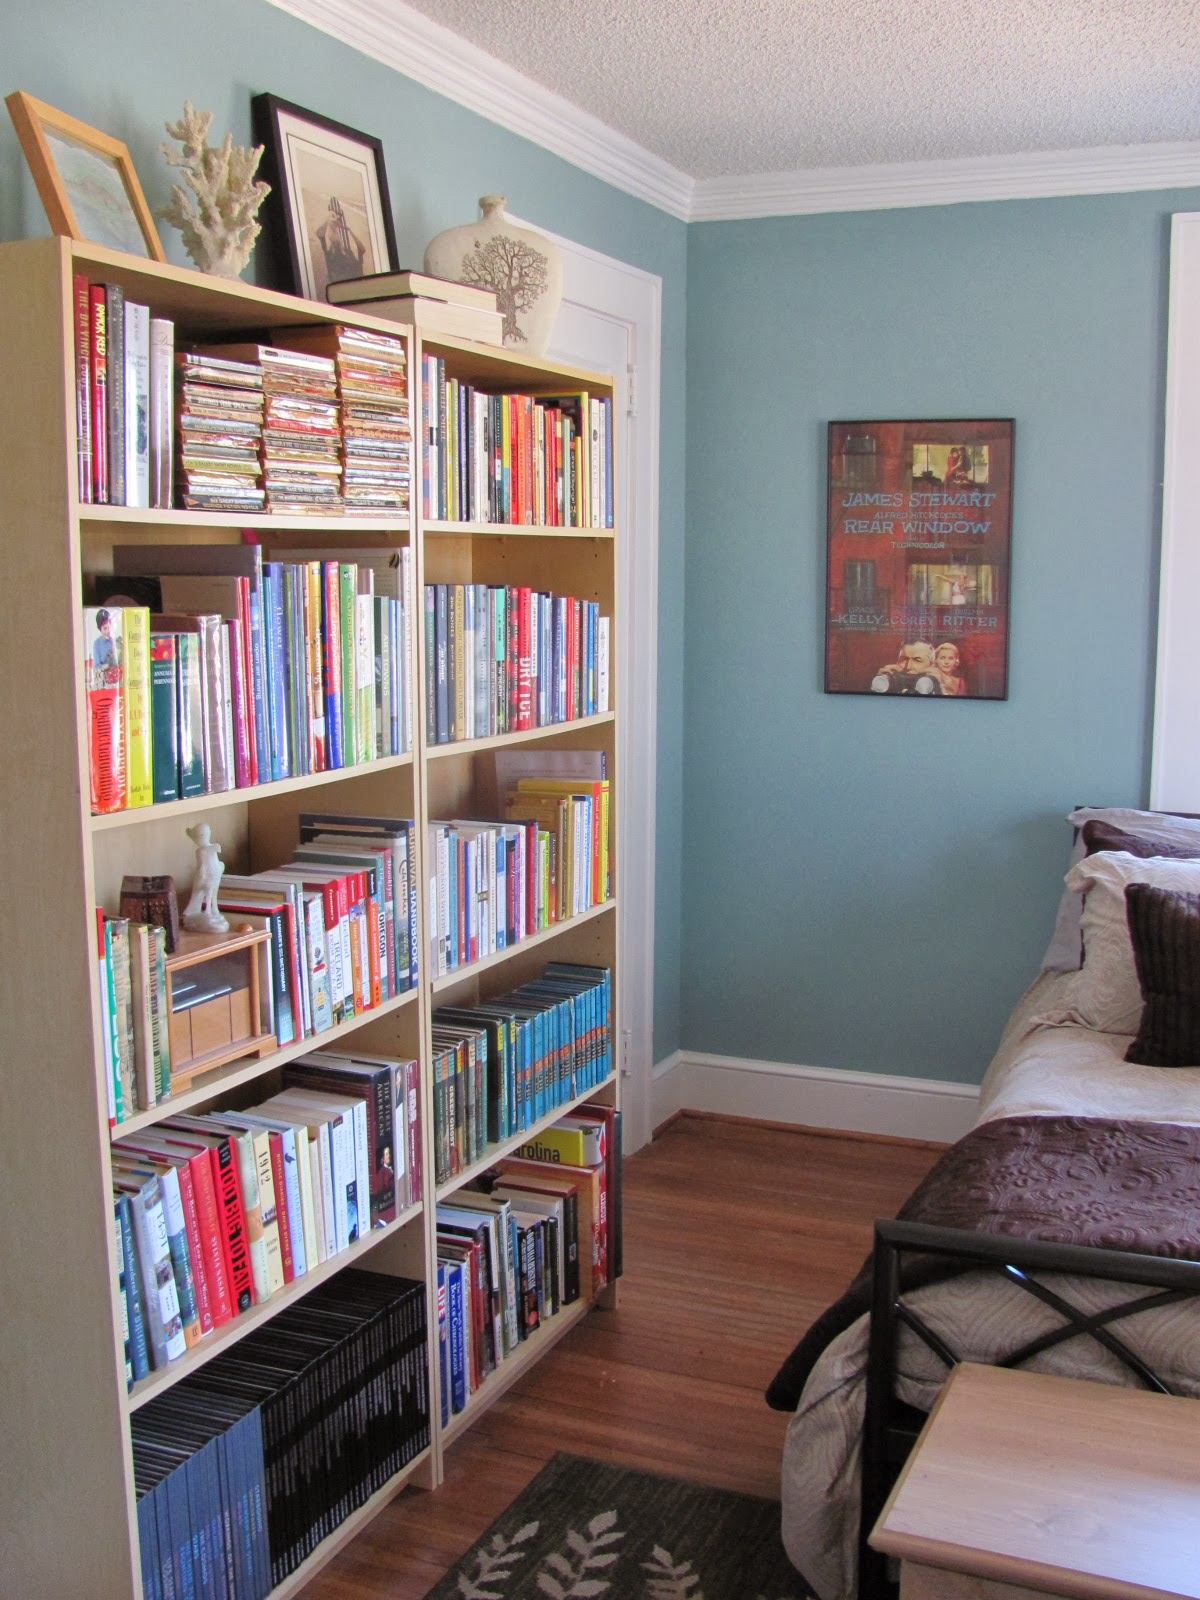 small guest bedroom library after organization and redesign